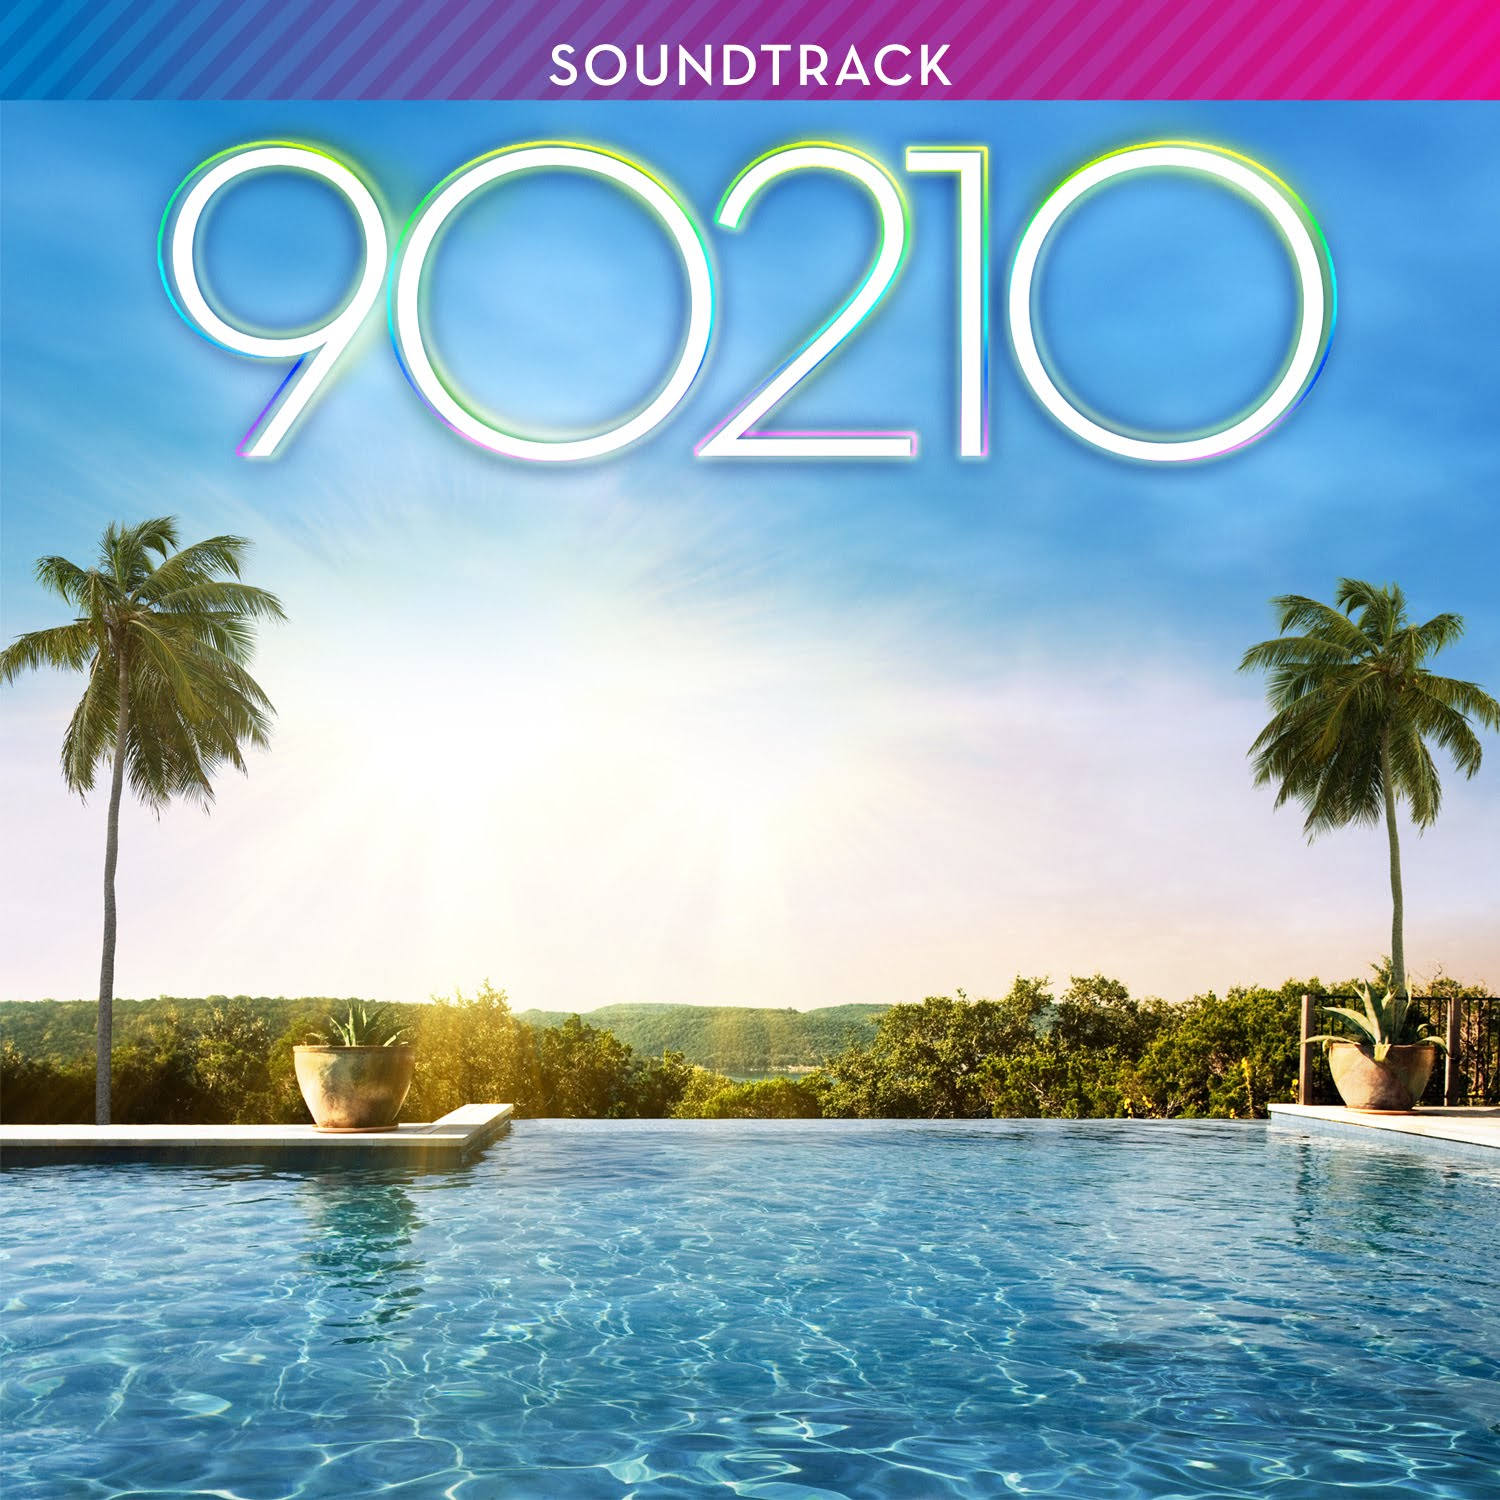 The All-American Rejects - Soundtrack 90210.jpg